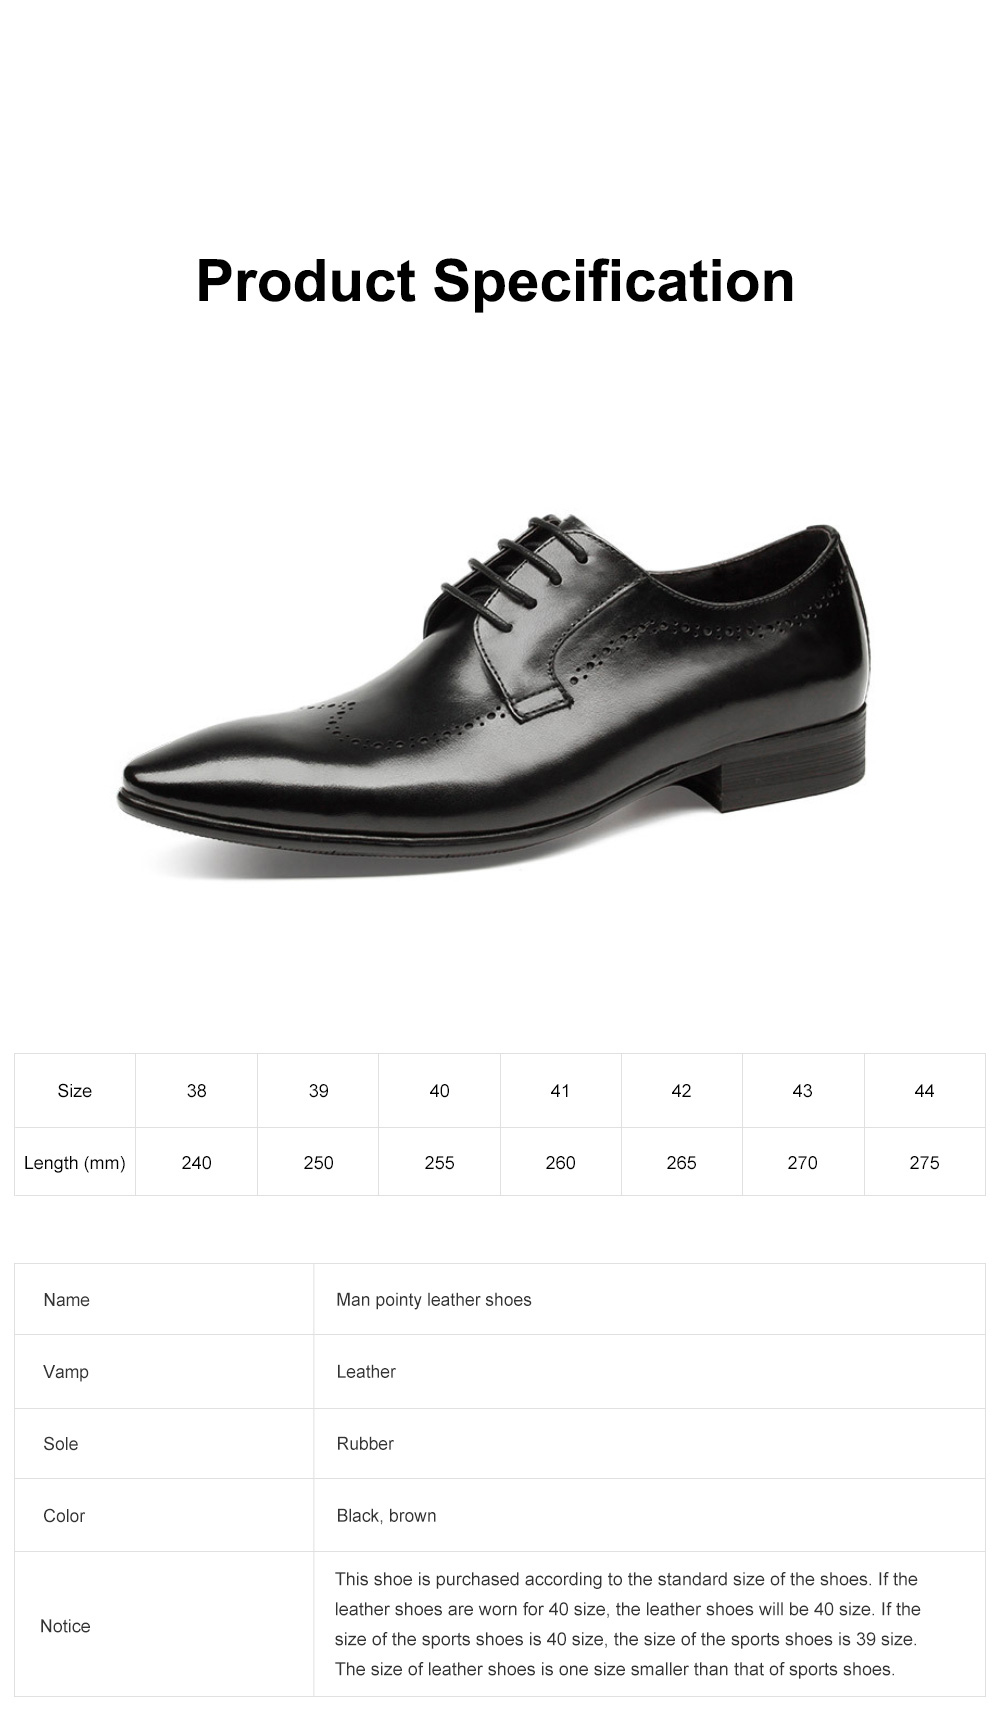 Males Vintage Stylish Minimalist Business Shoes Man Pointy Pint-tipped Leather Shoes with Anti-skid Rubber Sole 6